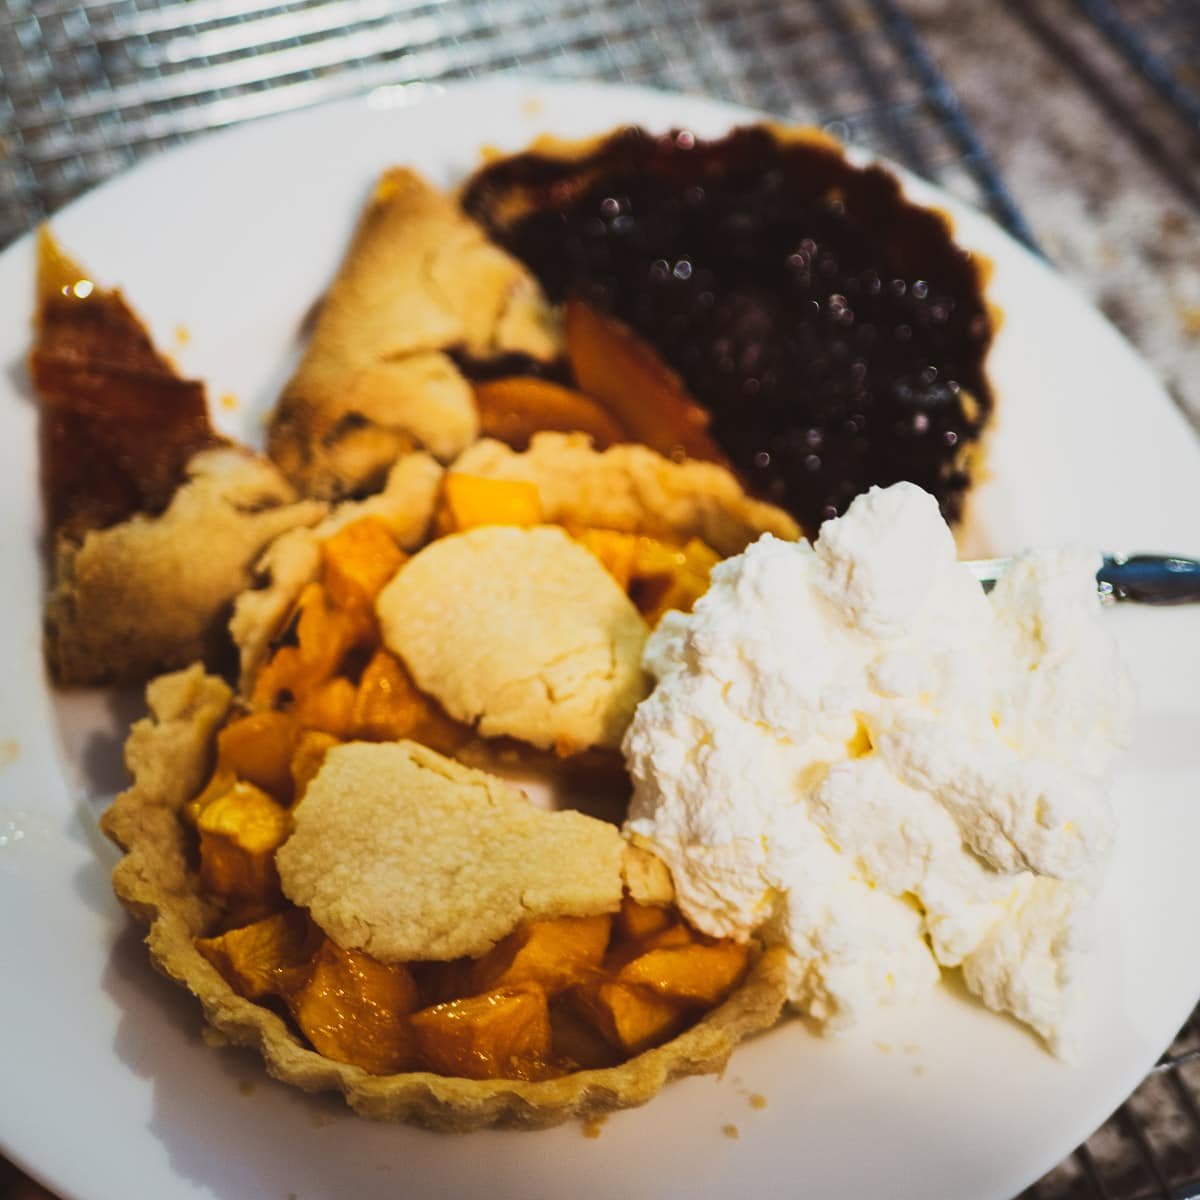 Different fruit pies on white plate with whipped cream